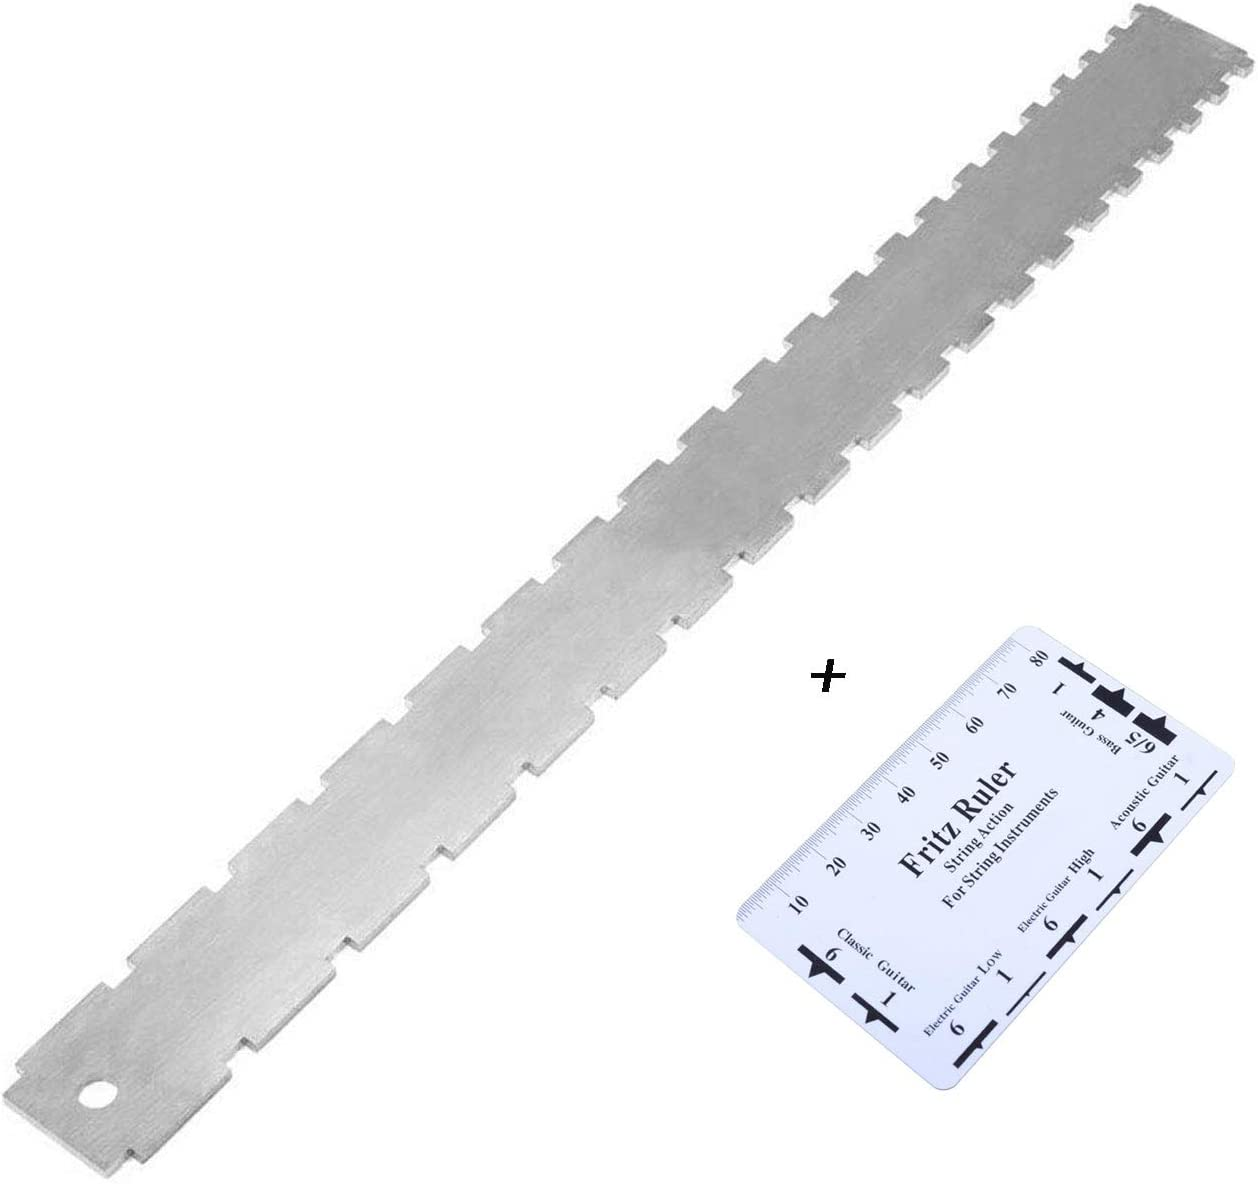 Guitar low-pricing Neck Notched Straight Edge String Tool Free Shipping Cheap Bargain Gift Luthiers with Acti